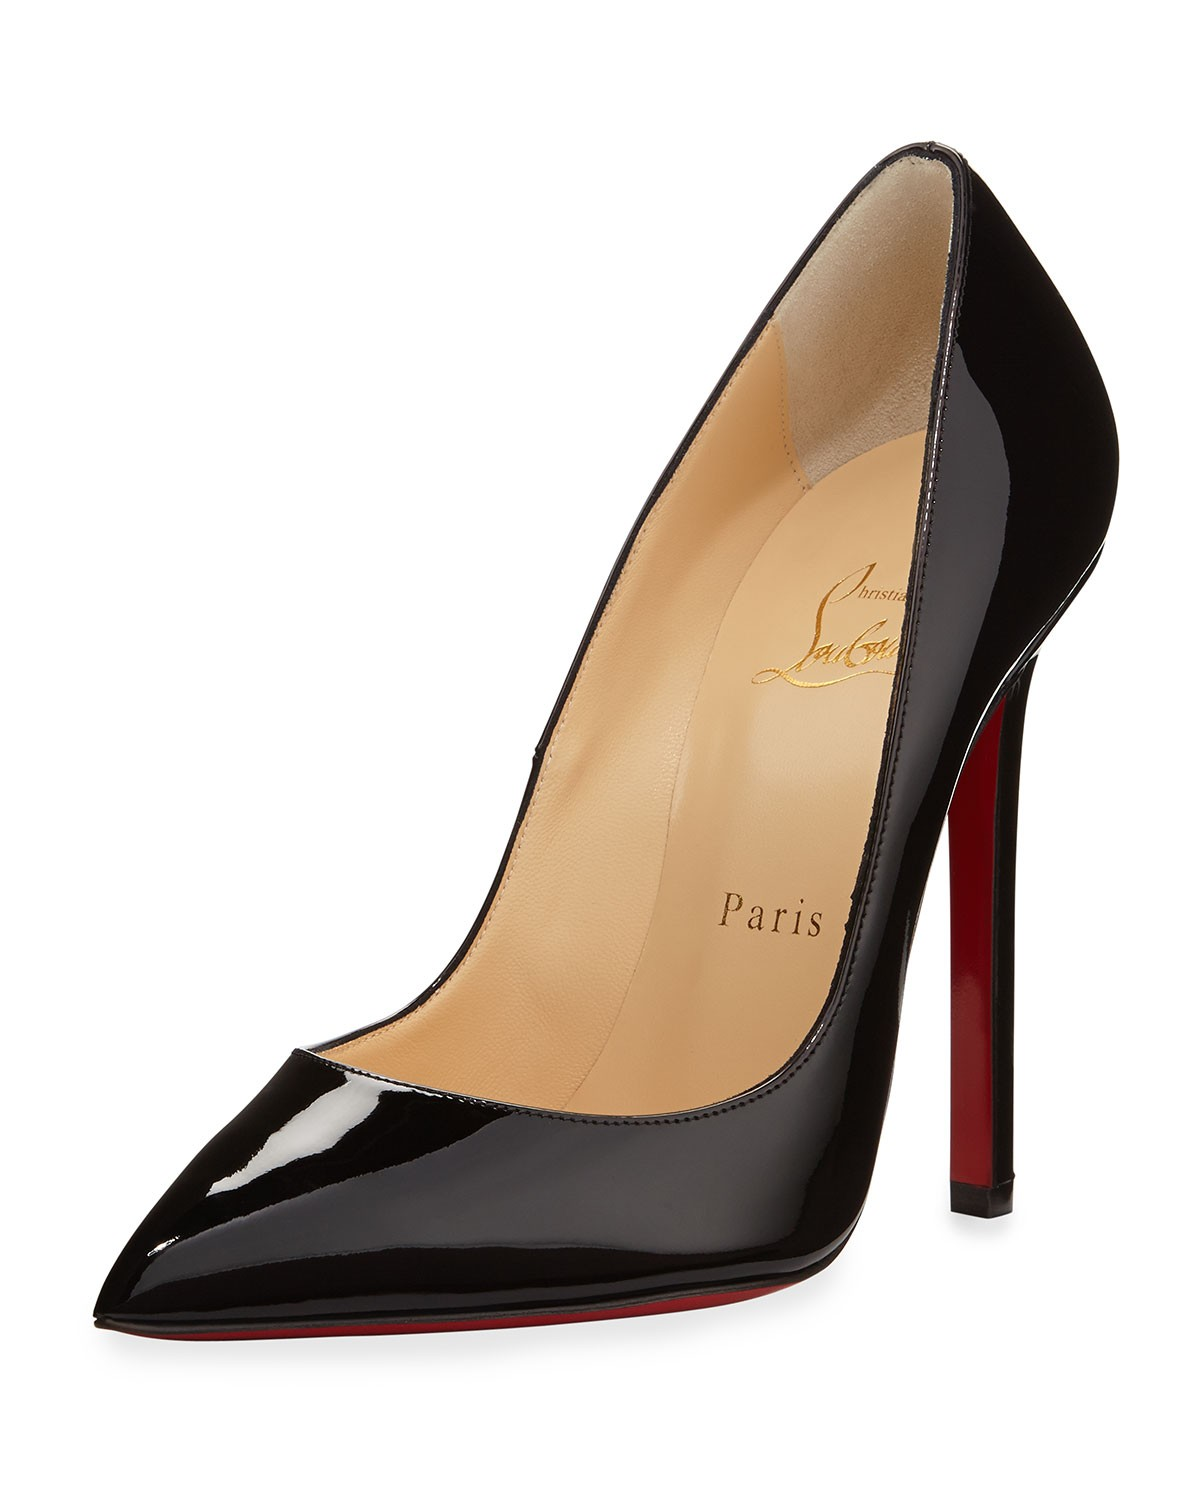 buy online 573f3 836c7 My Louboutins | The Man. The Shoes. The Red Sole.